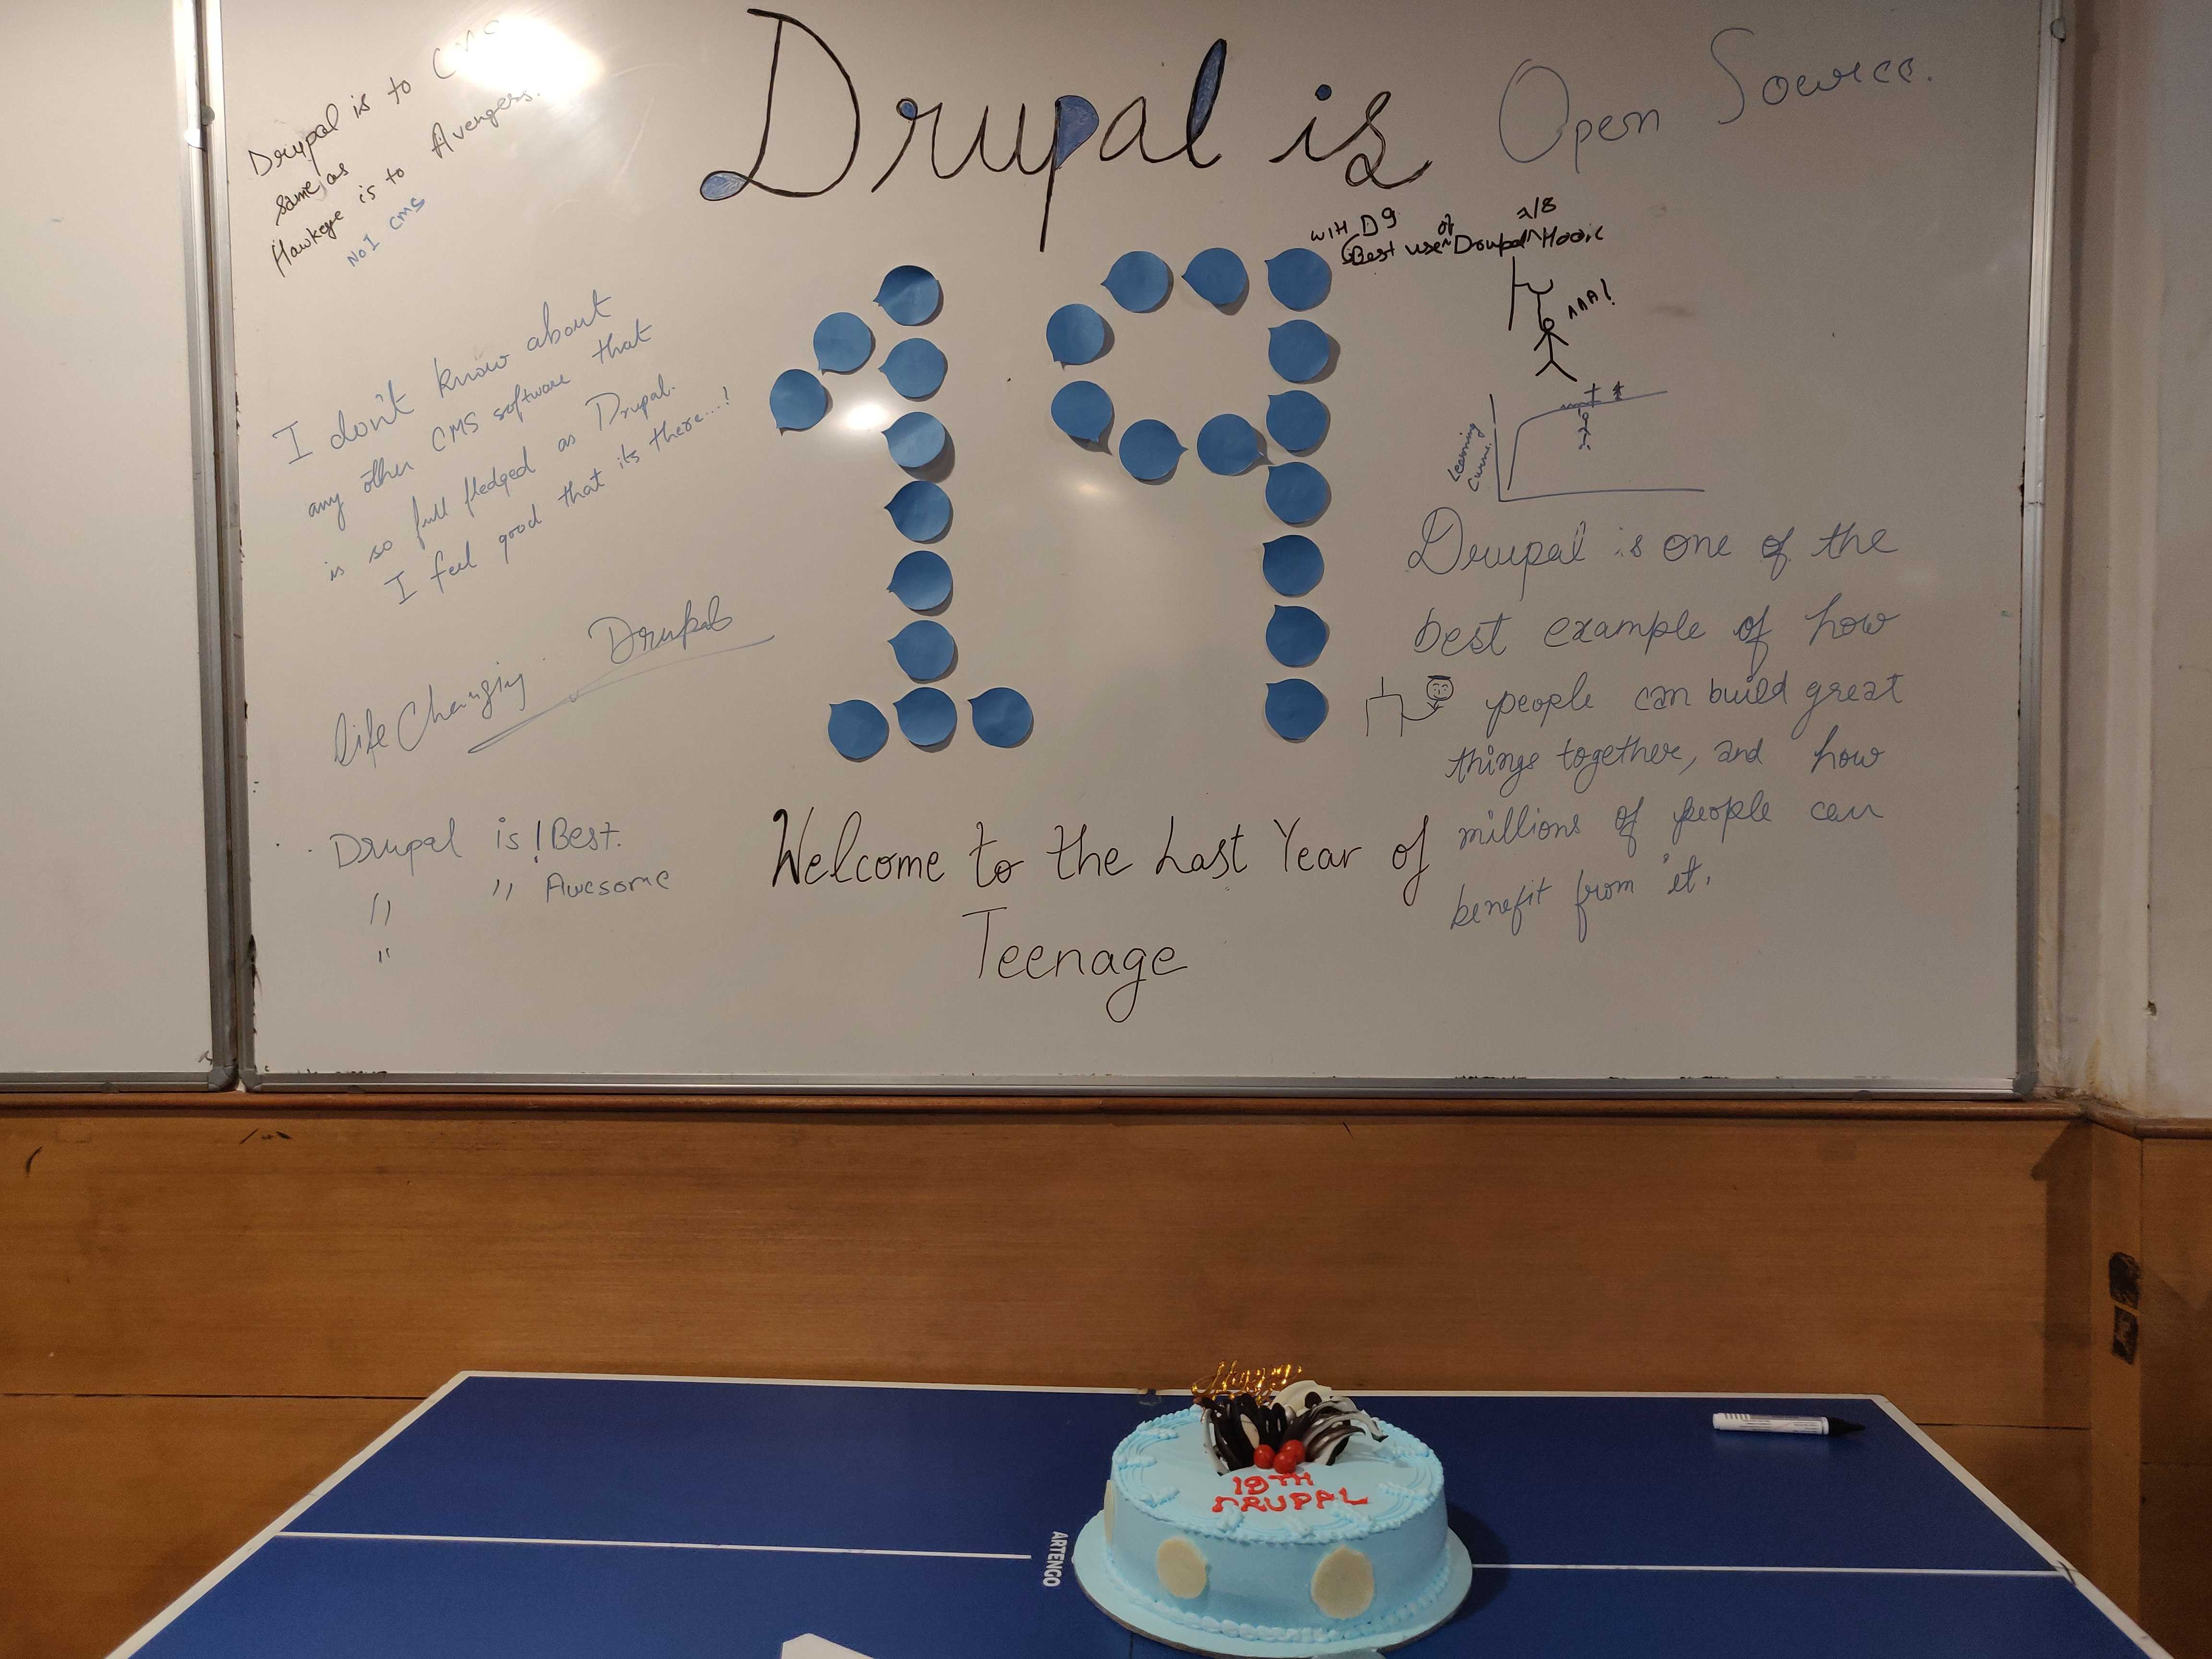 A whiteboard with scribbles of Drupal appreciation and number 19 written at the centre and a blue cake below